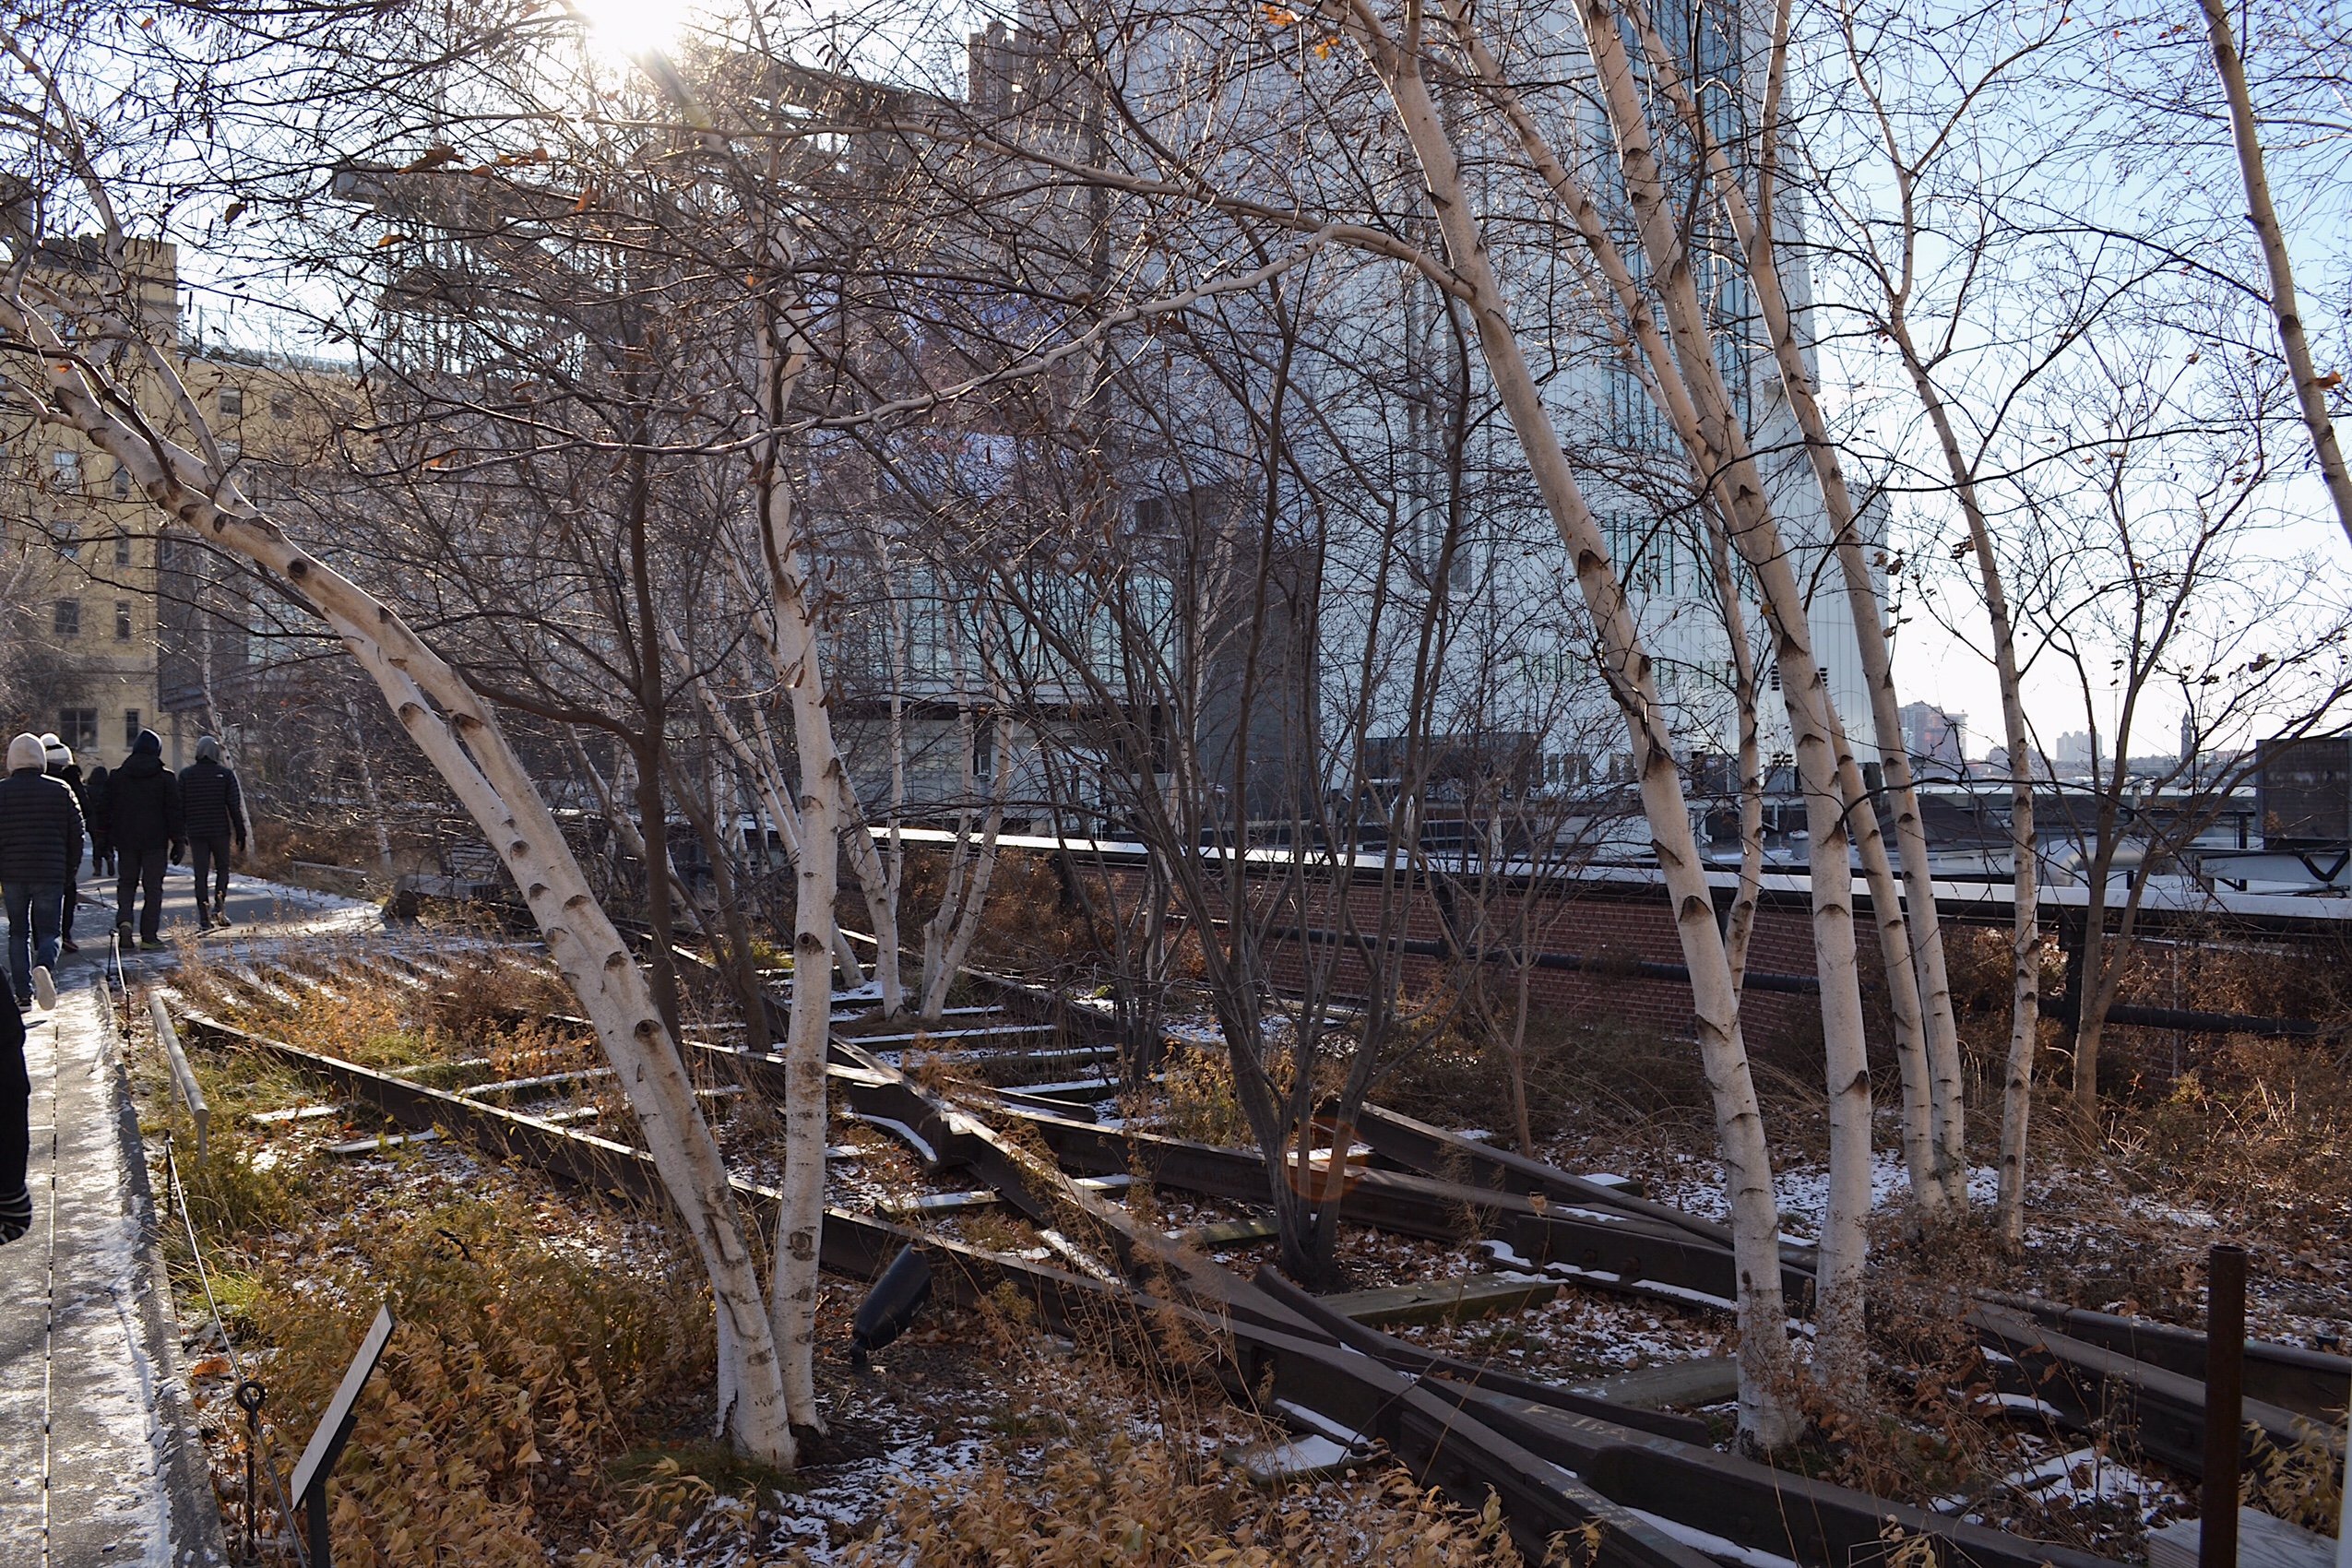 Image of the highline in New York